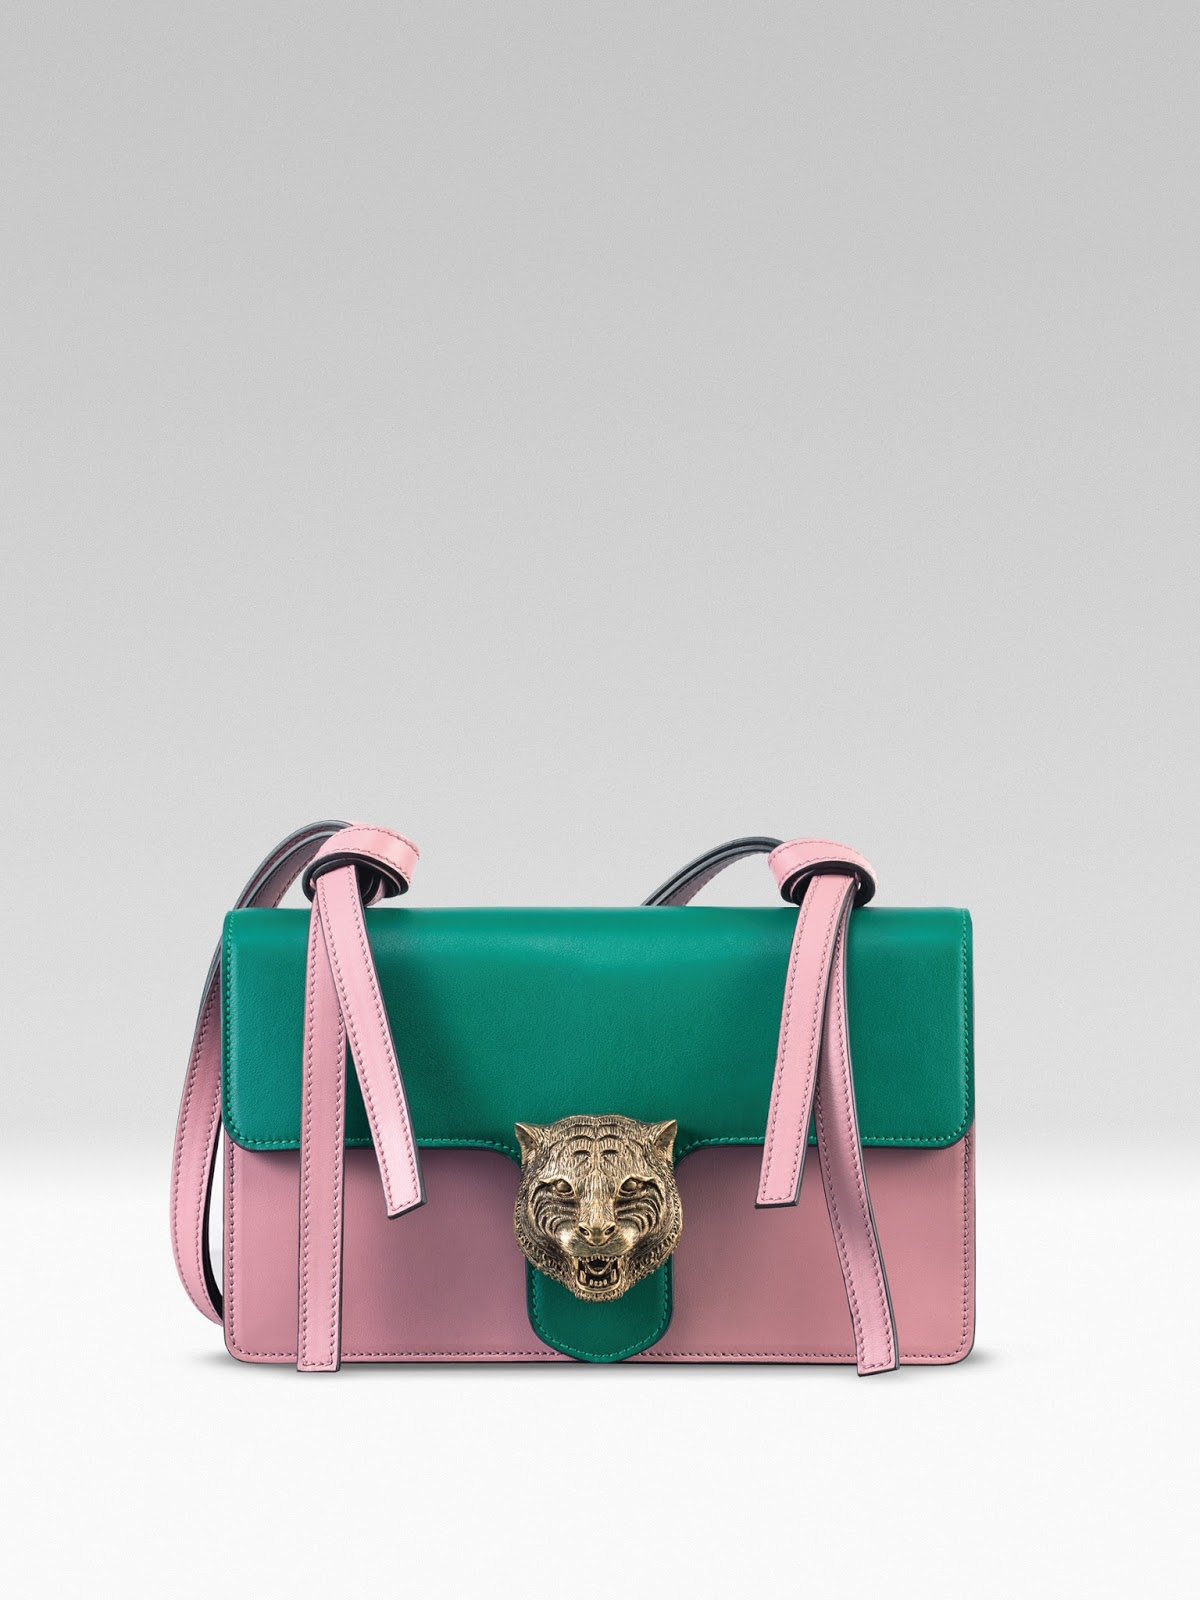 Gucci's Animalier Shoulder Bag